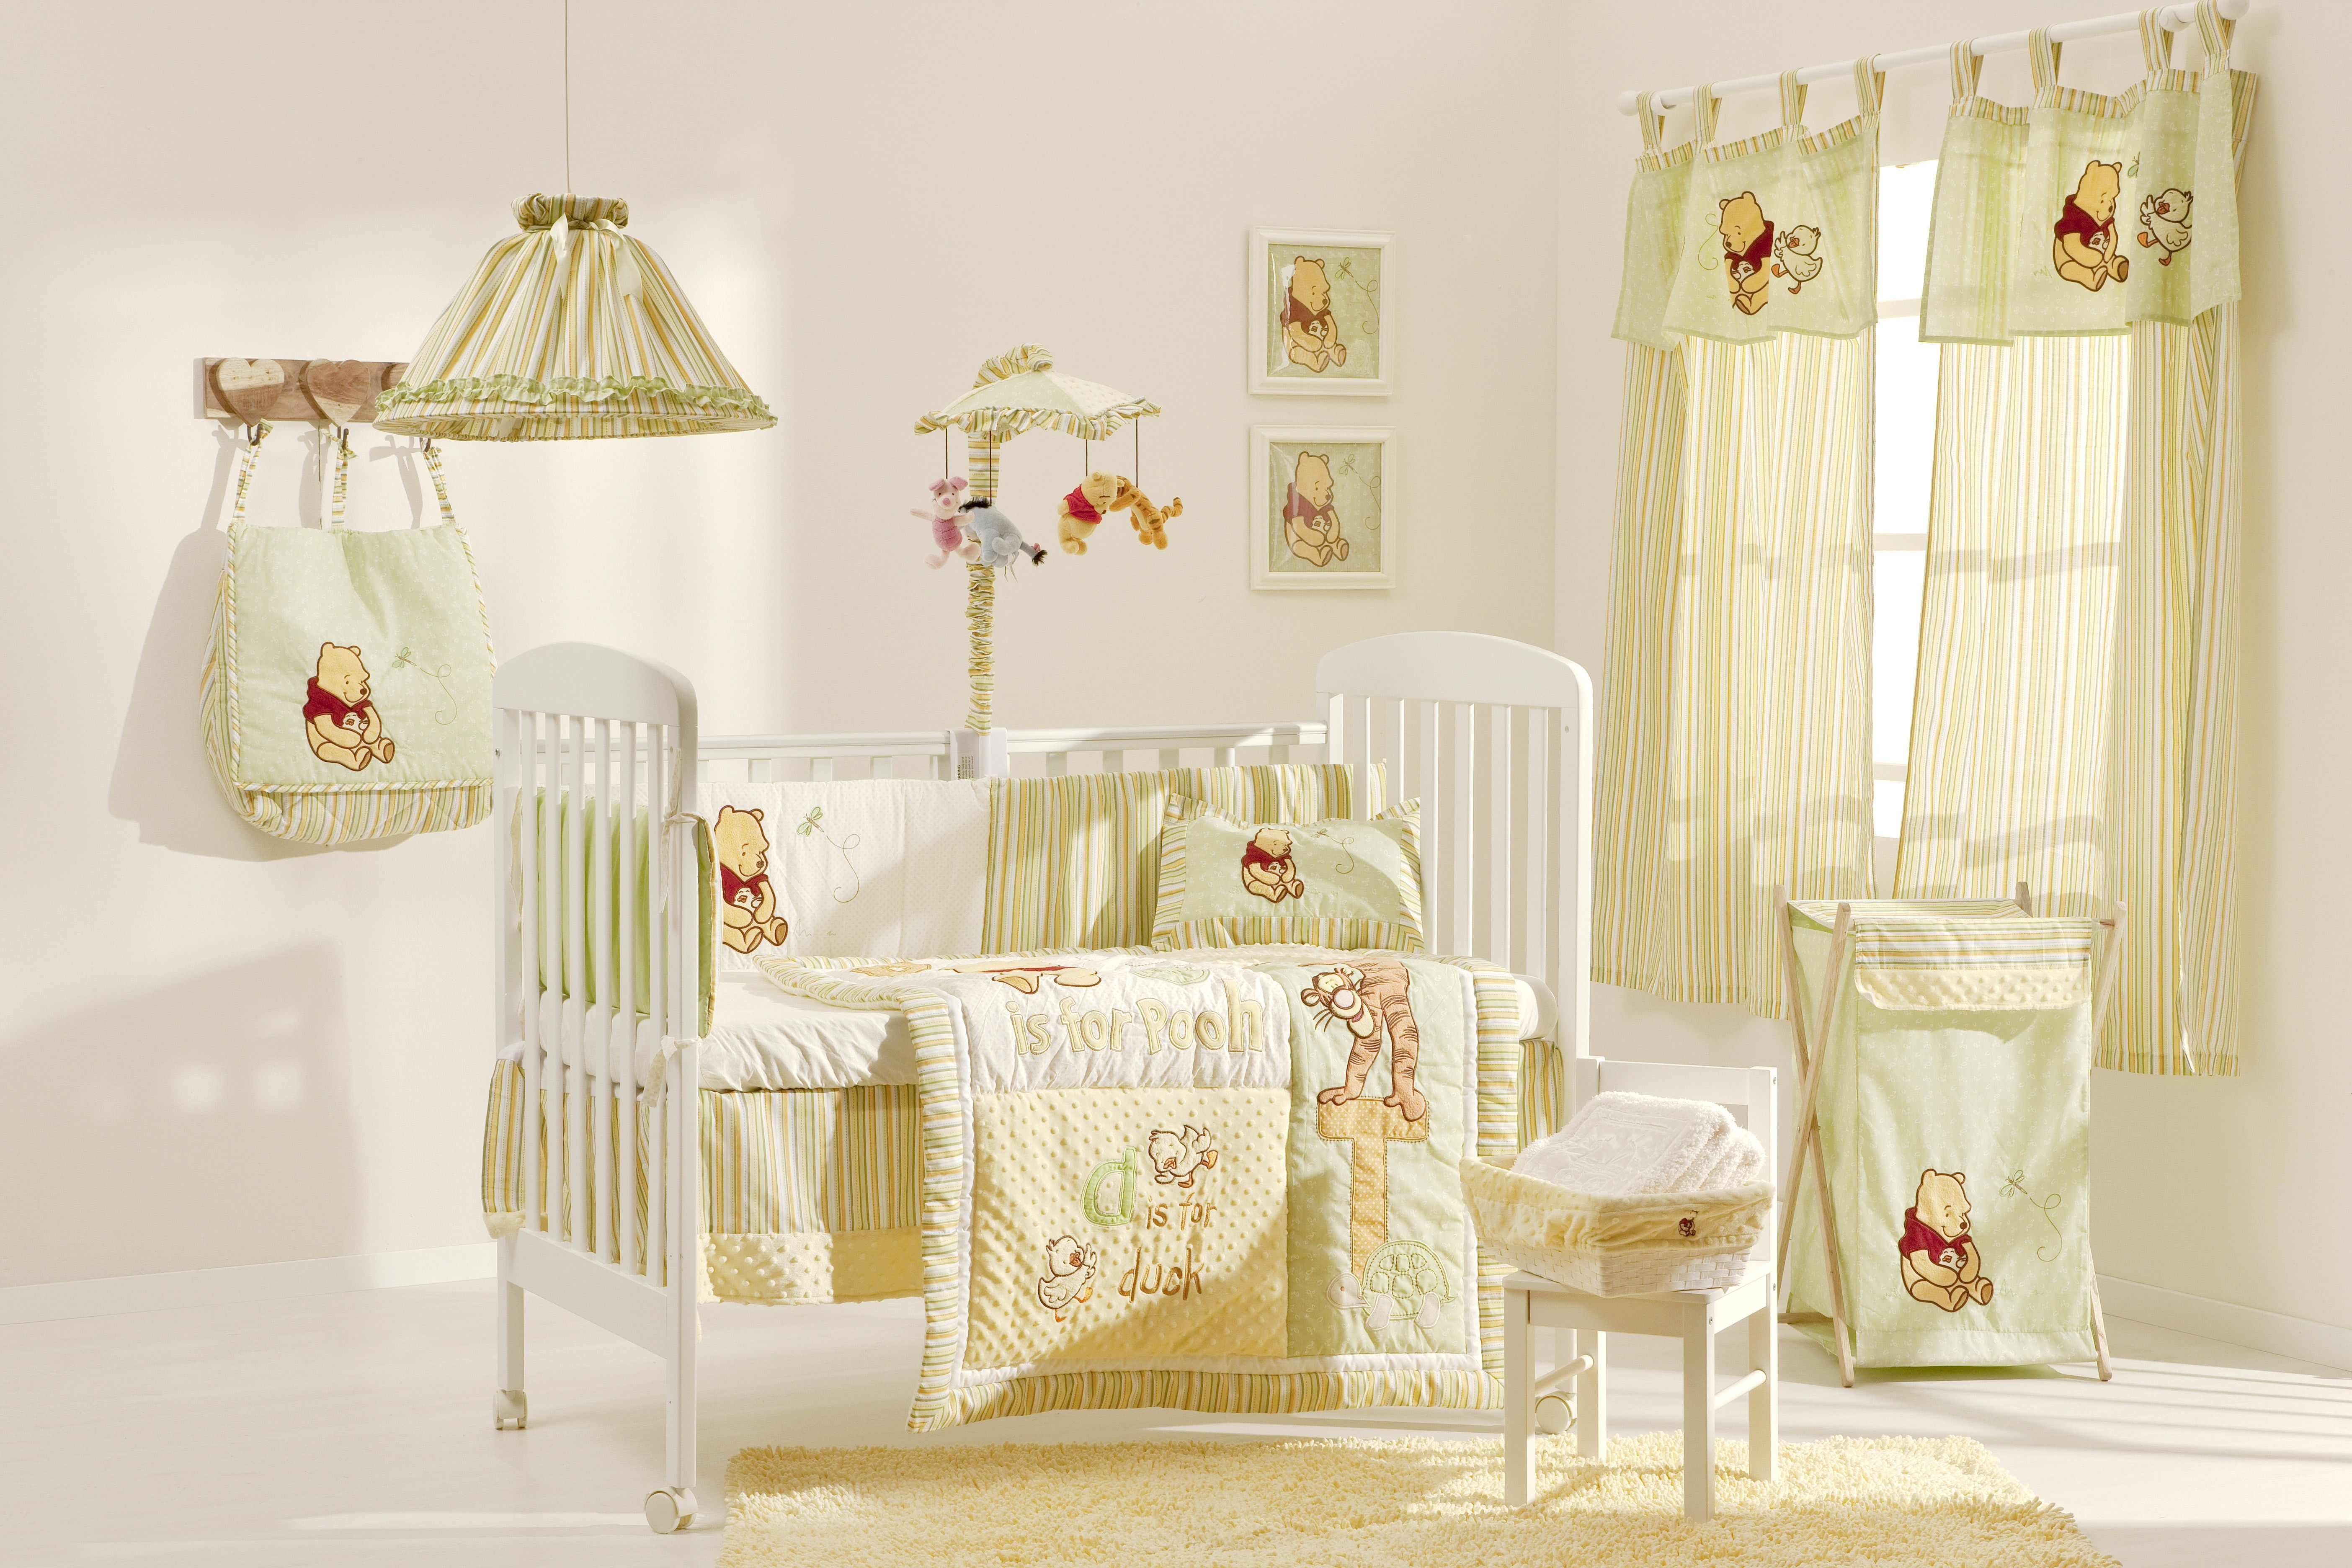 Winnie Pooh Baby Bettwäsche Set Pooh Bear Nursery Pooh Bear In The Field Crib Bedding Collection